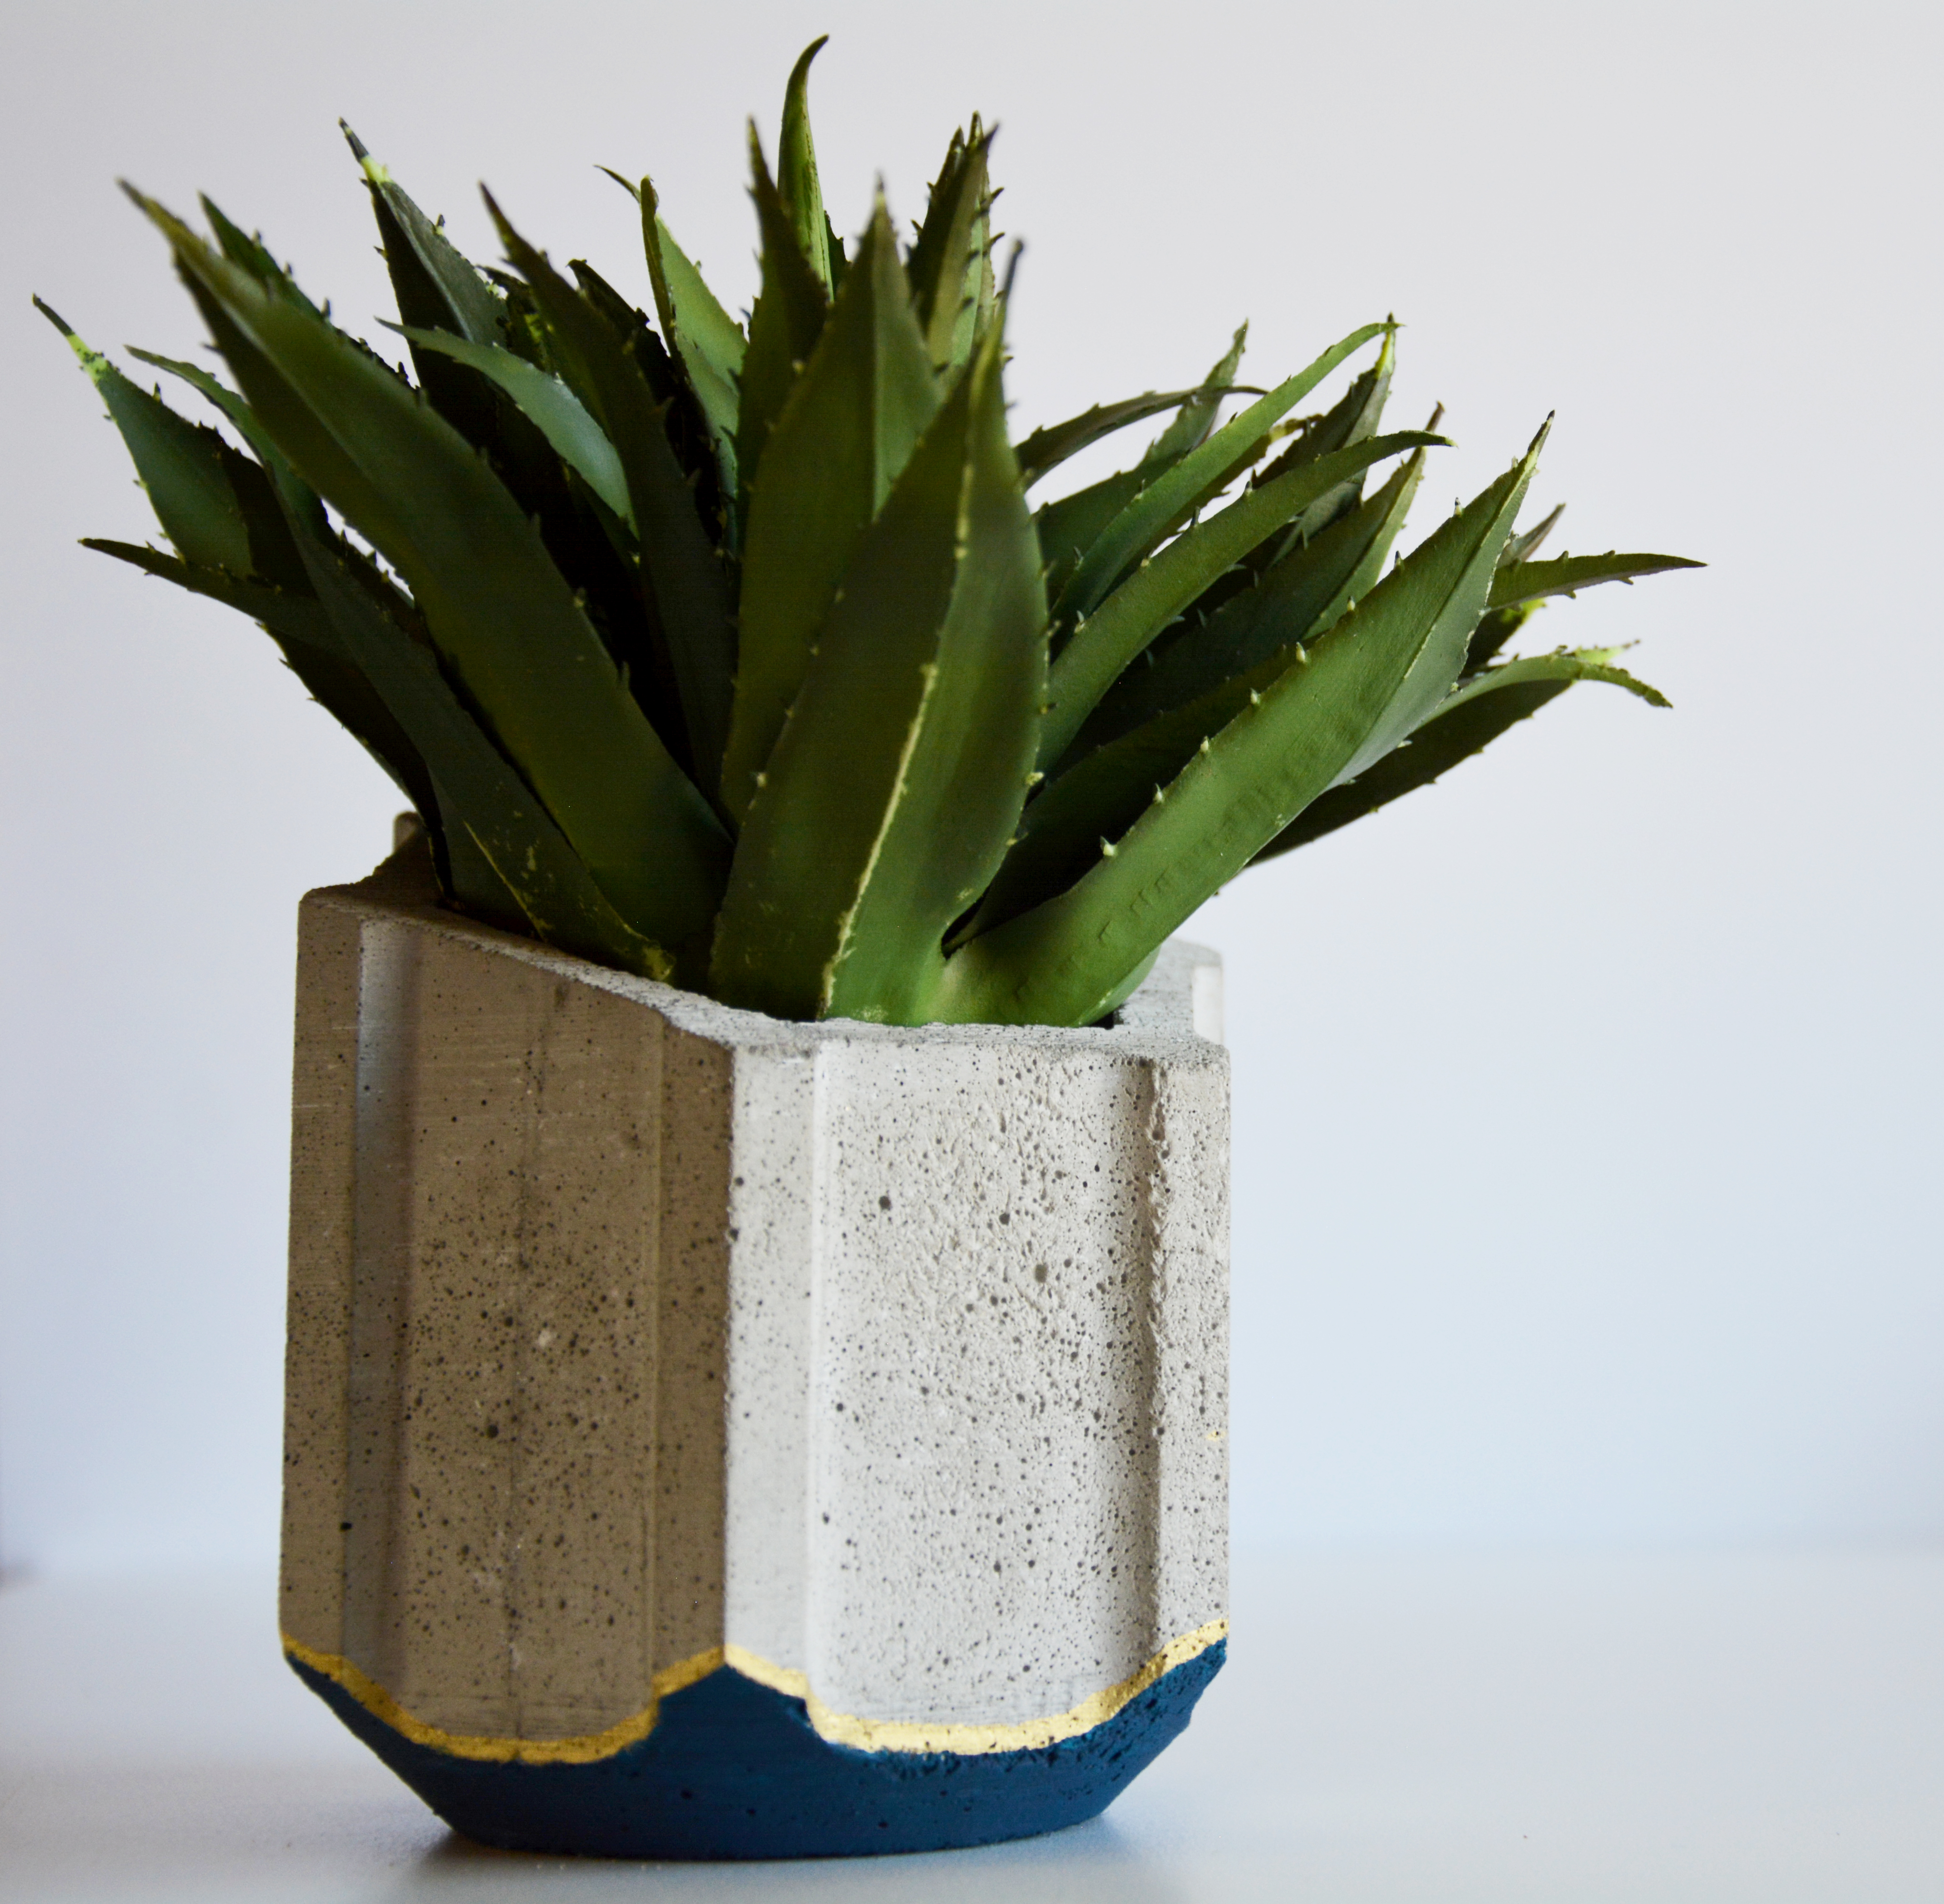 Picture of Option 1: Finishing 3D Printed Planter